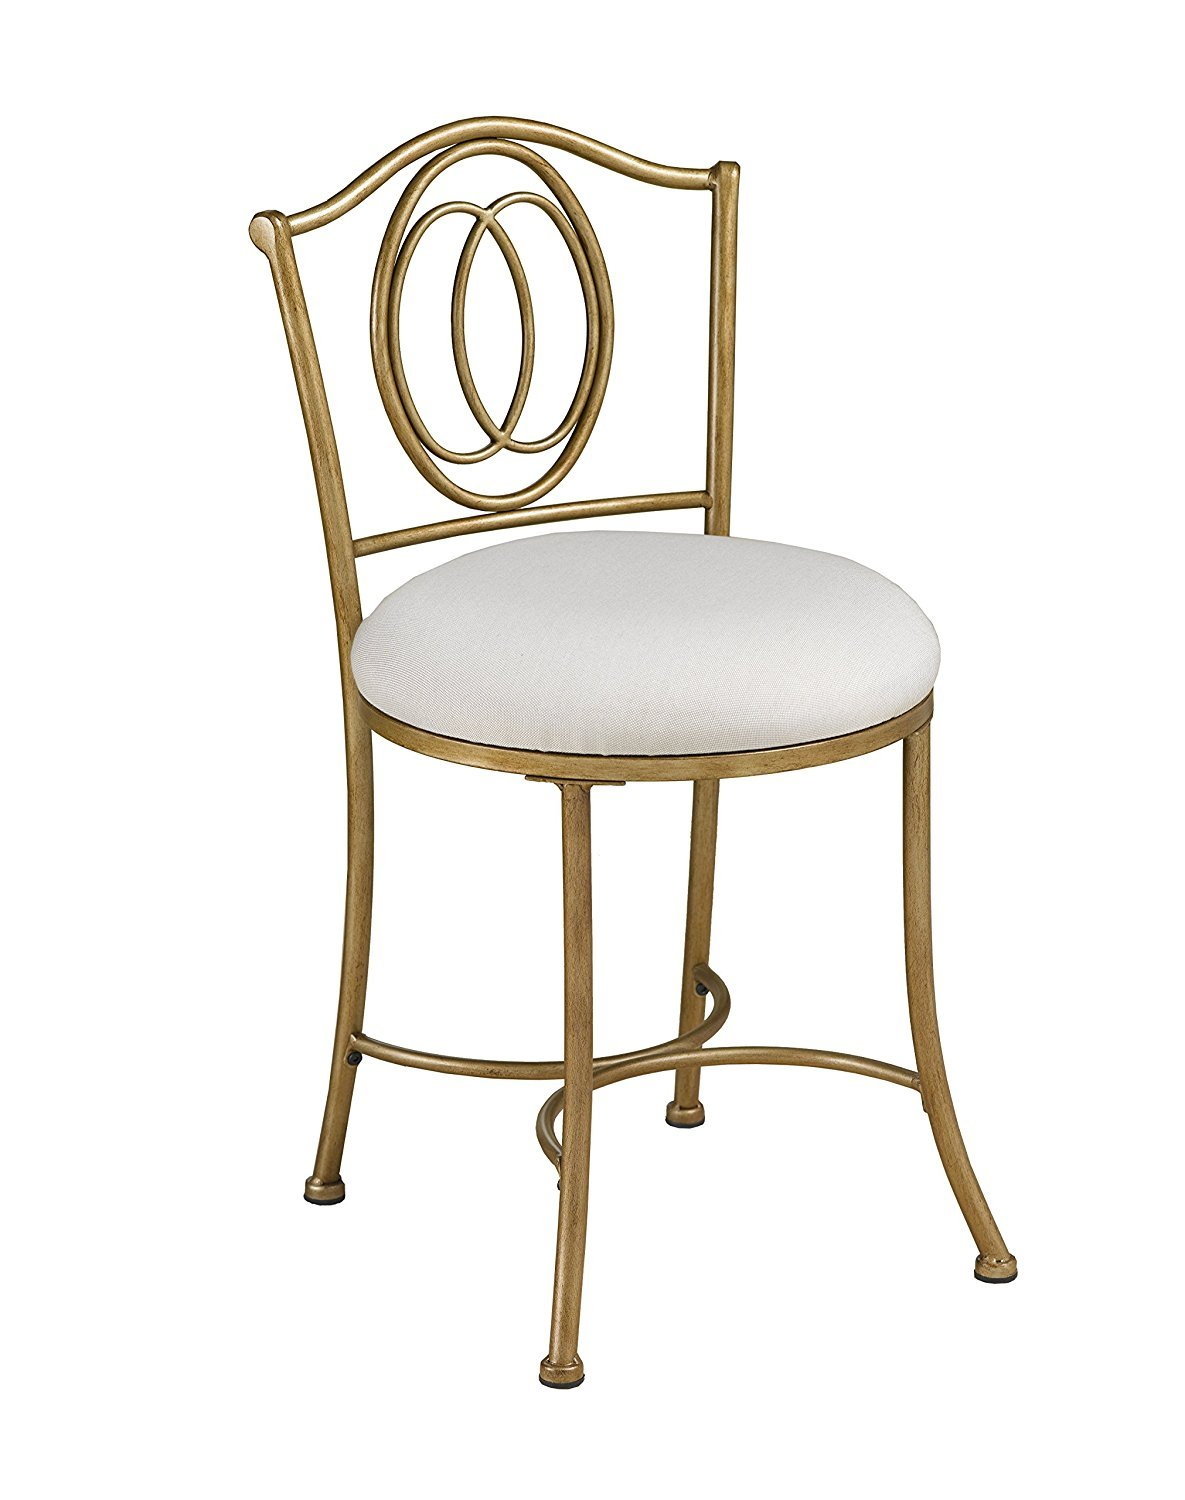 chair design gold professional makeup vanity stool home furniture